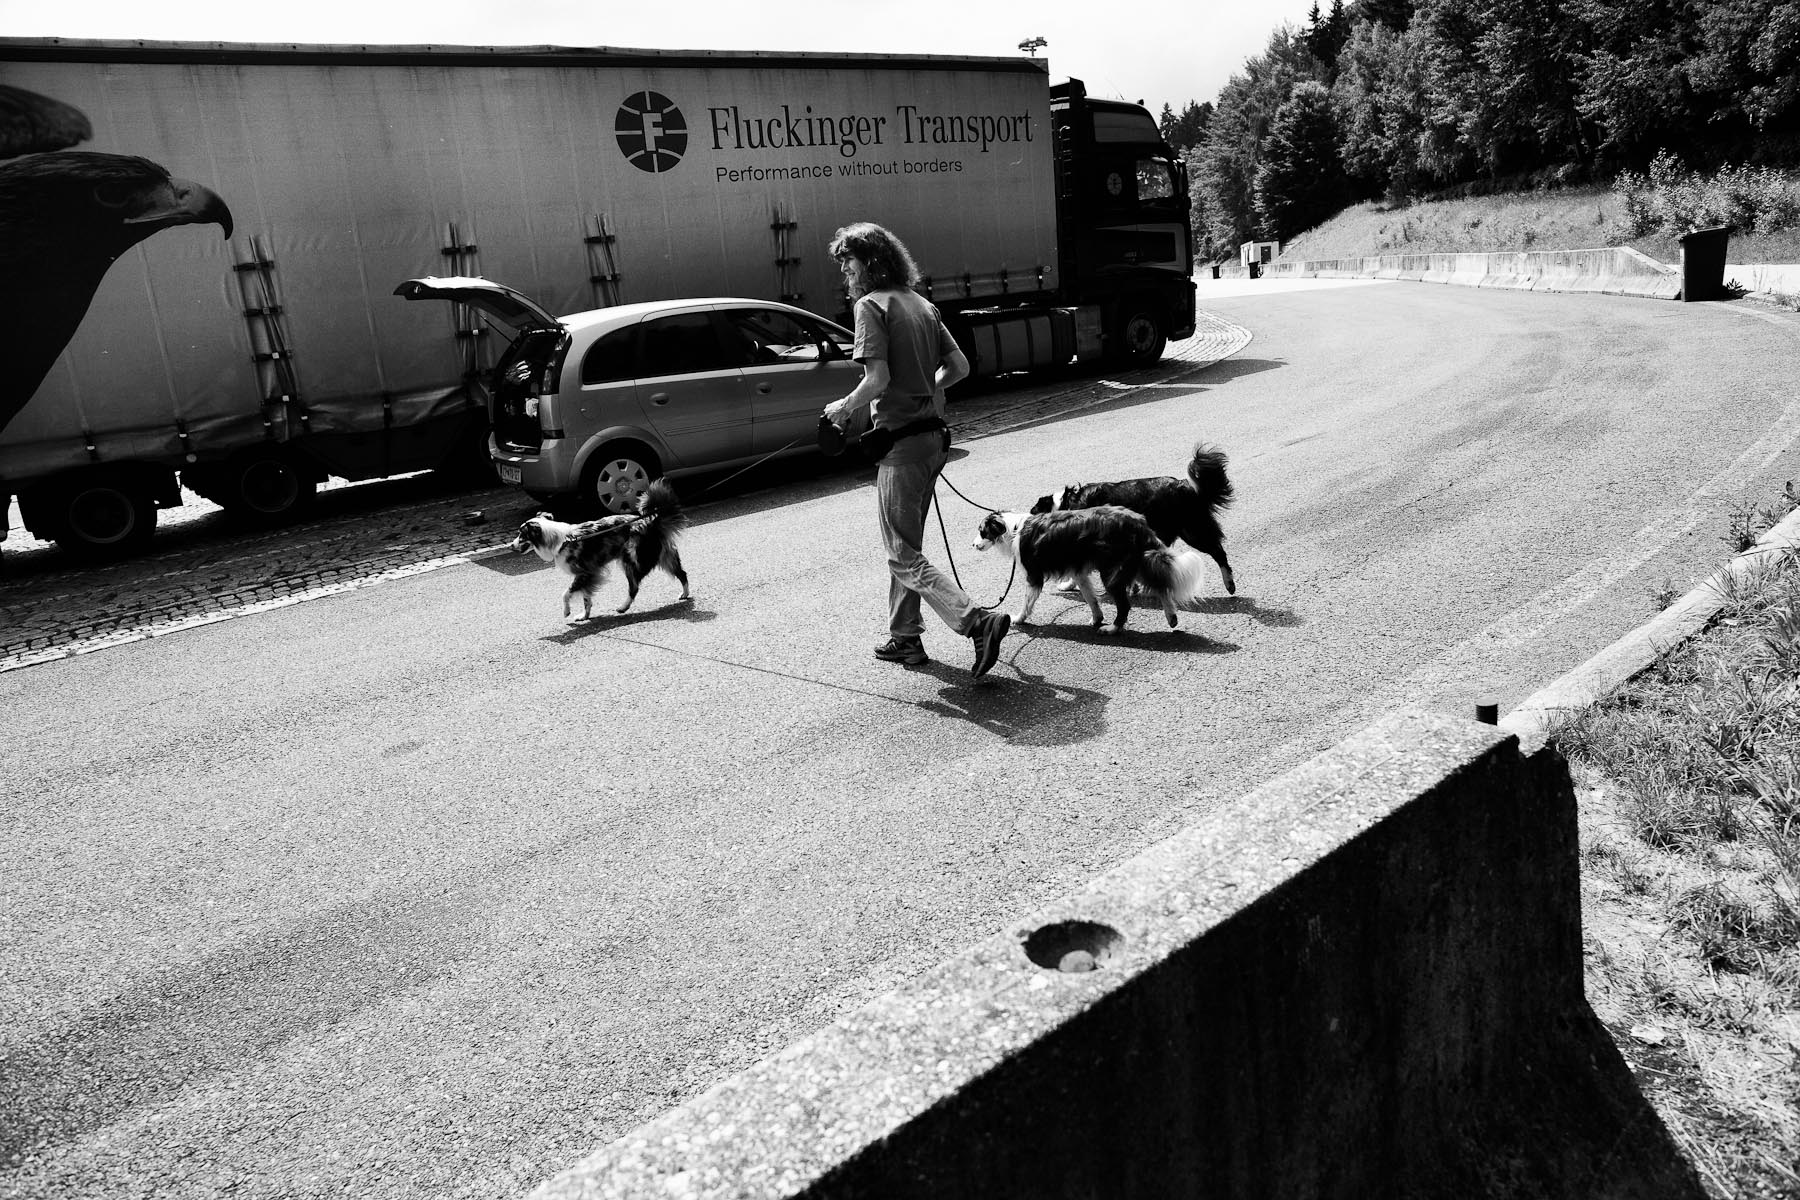 The drives to competitions in Germany, Czech Republic, Poland etc. are long. Jean stops by the highway to stretch her legs and walk the dogs. June 3, 2011.